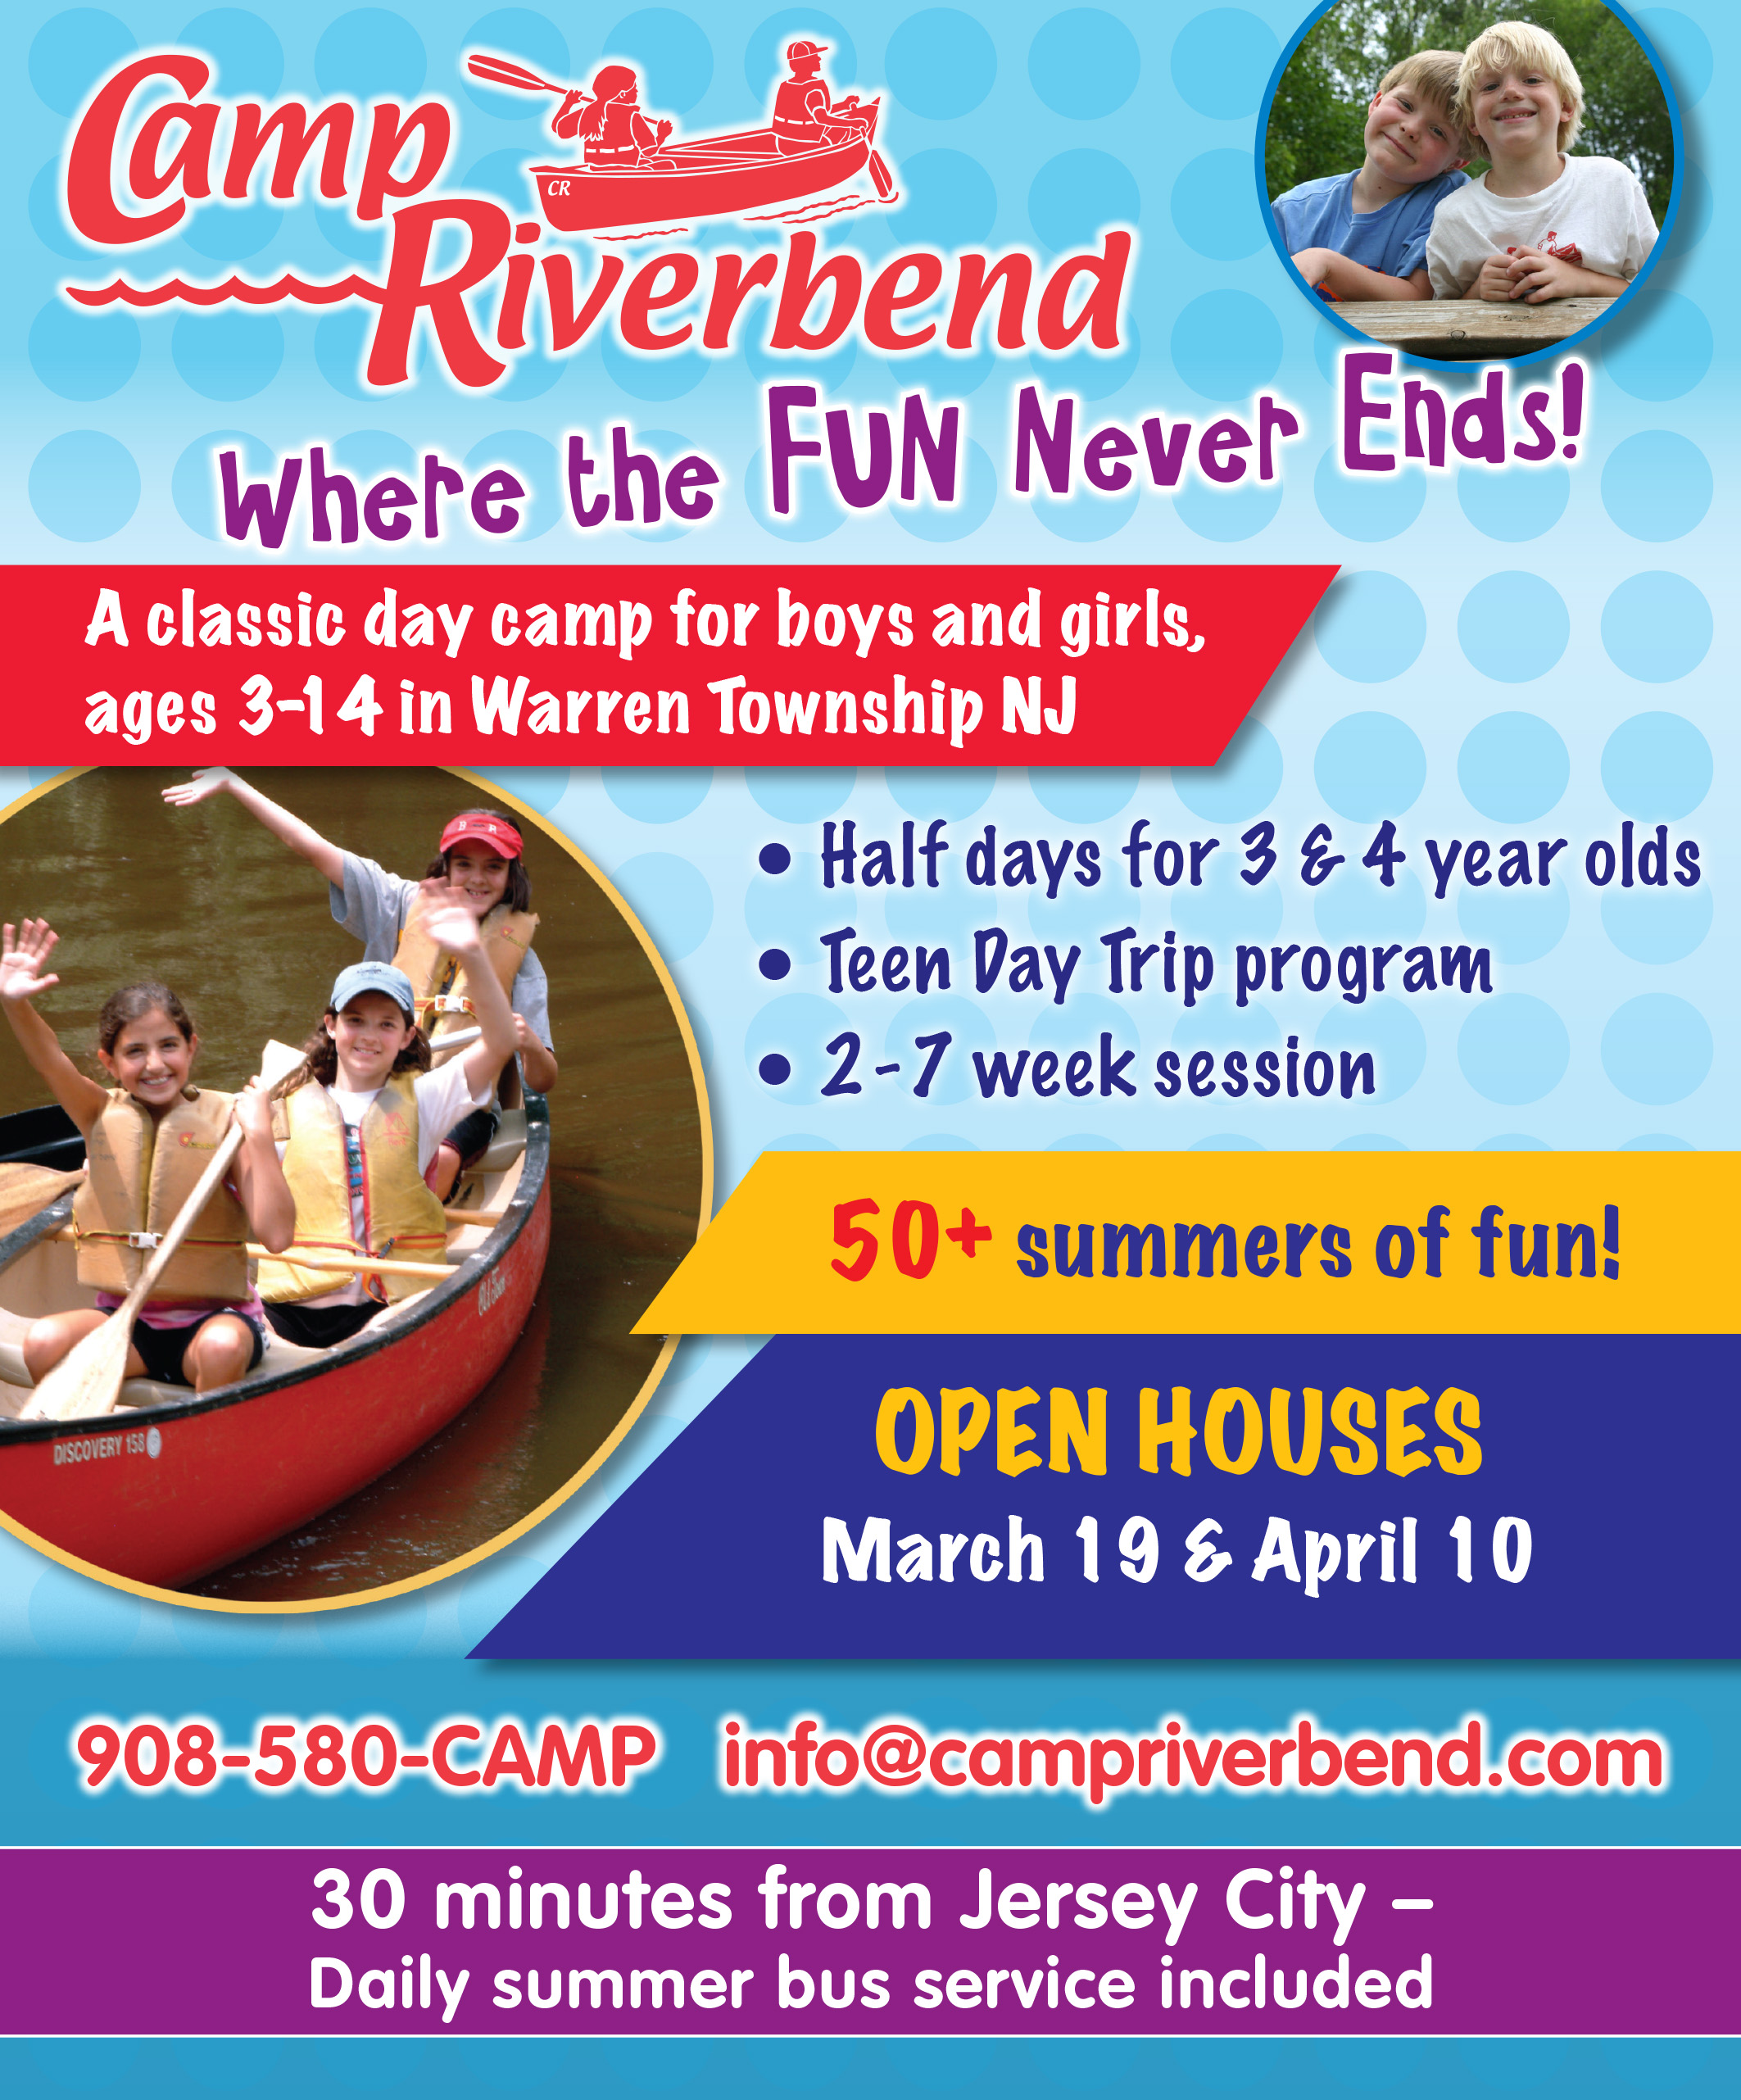 Camp Riverbend:                                           908-580-CAMP